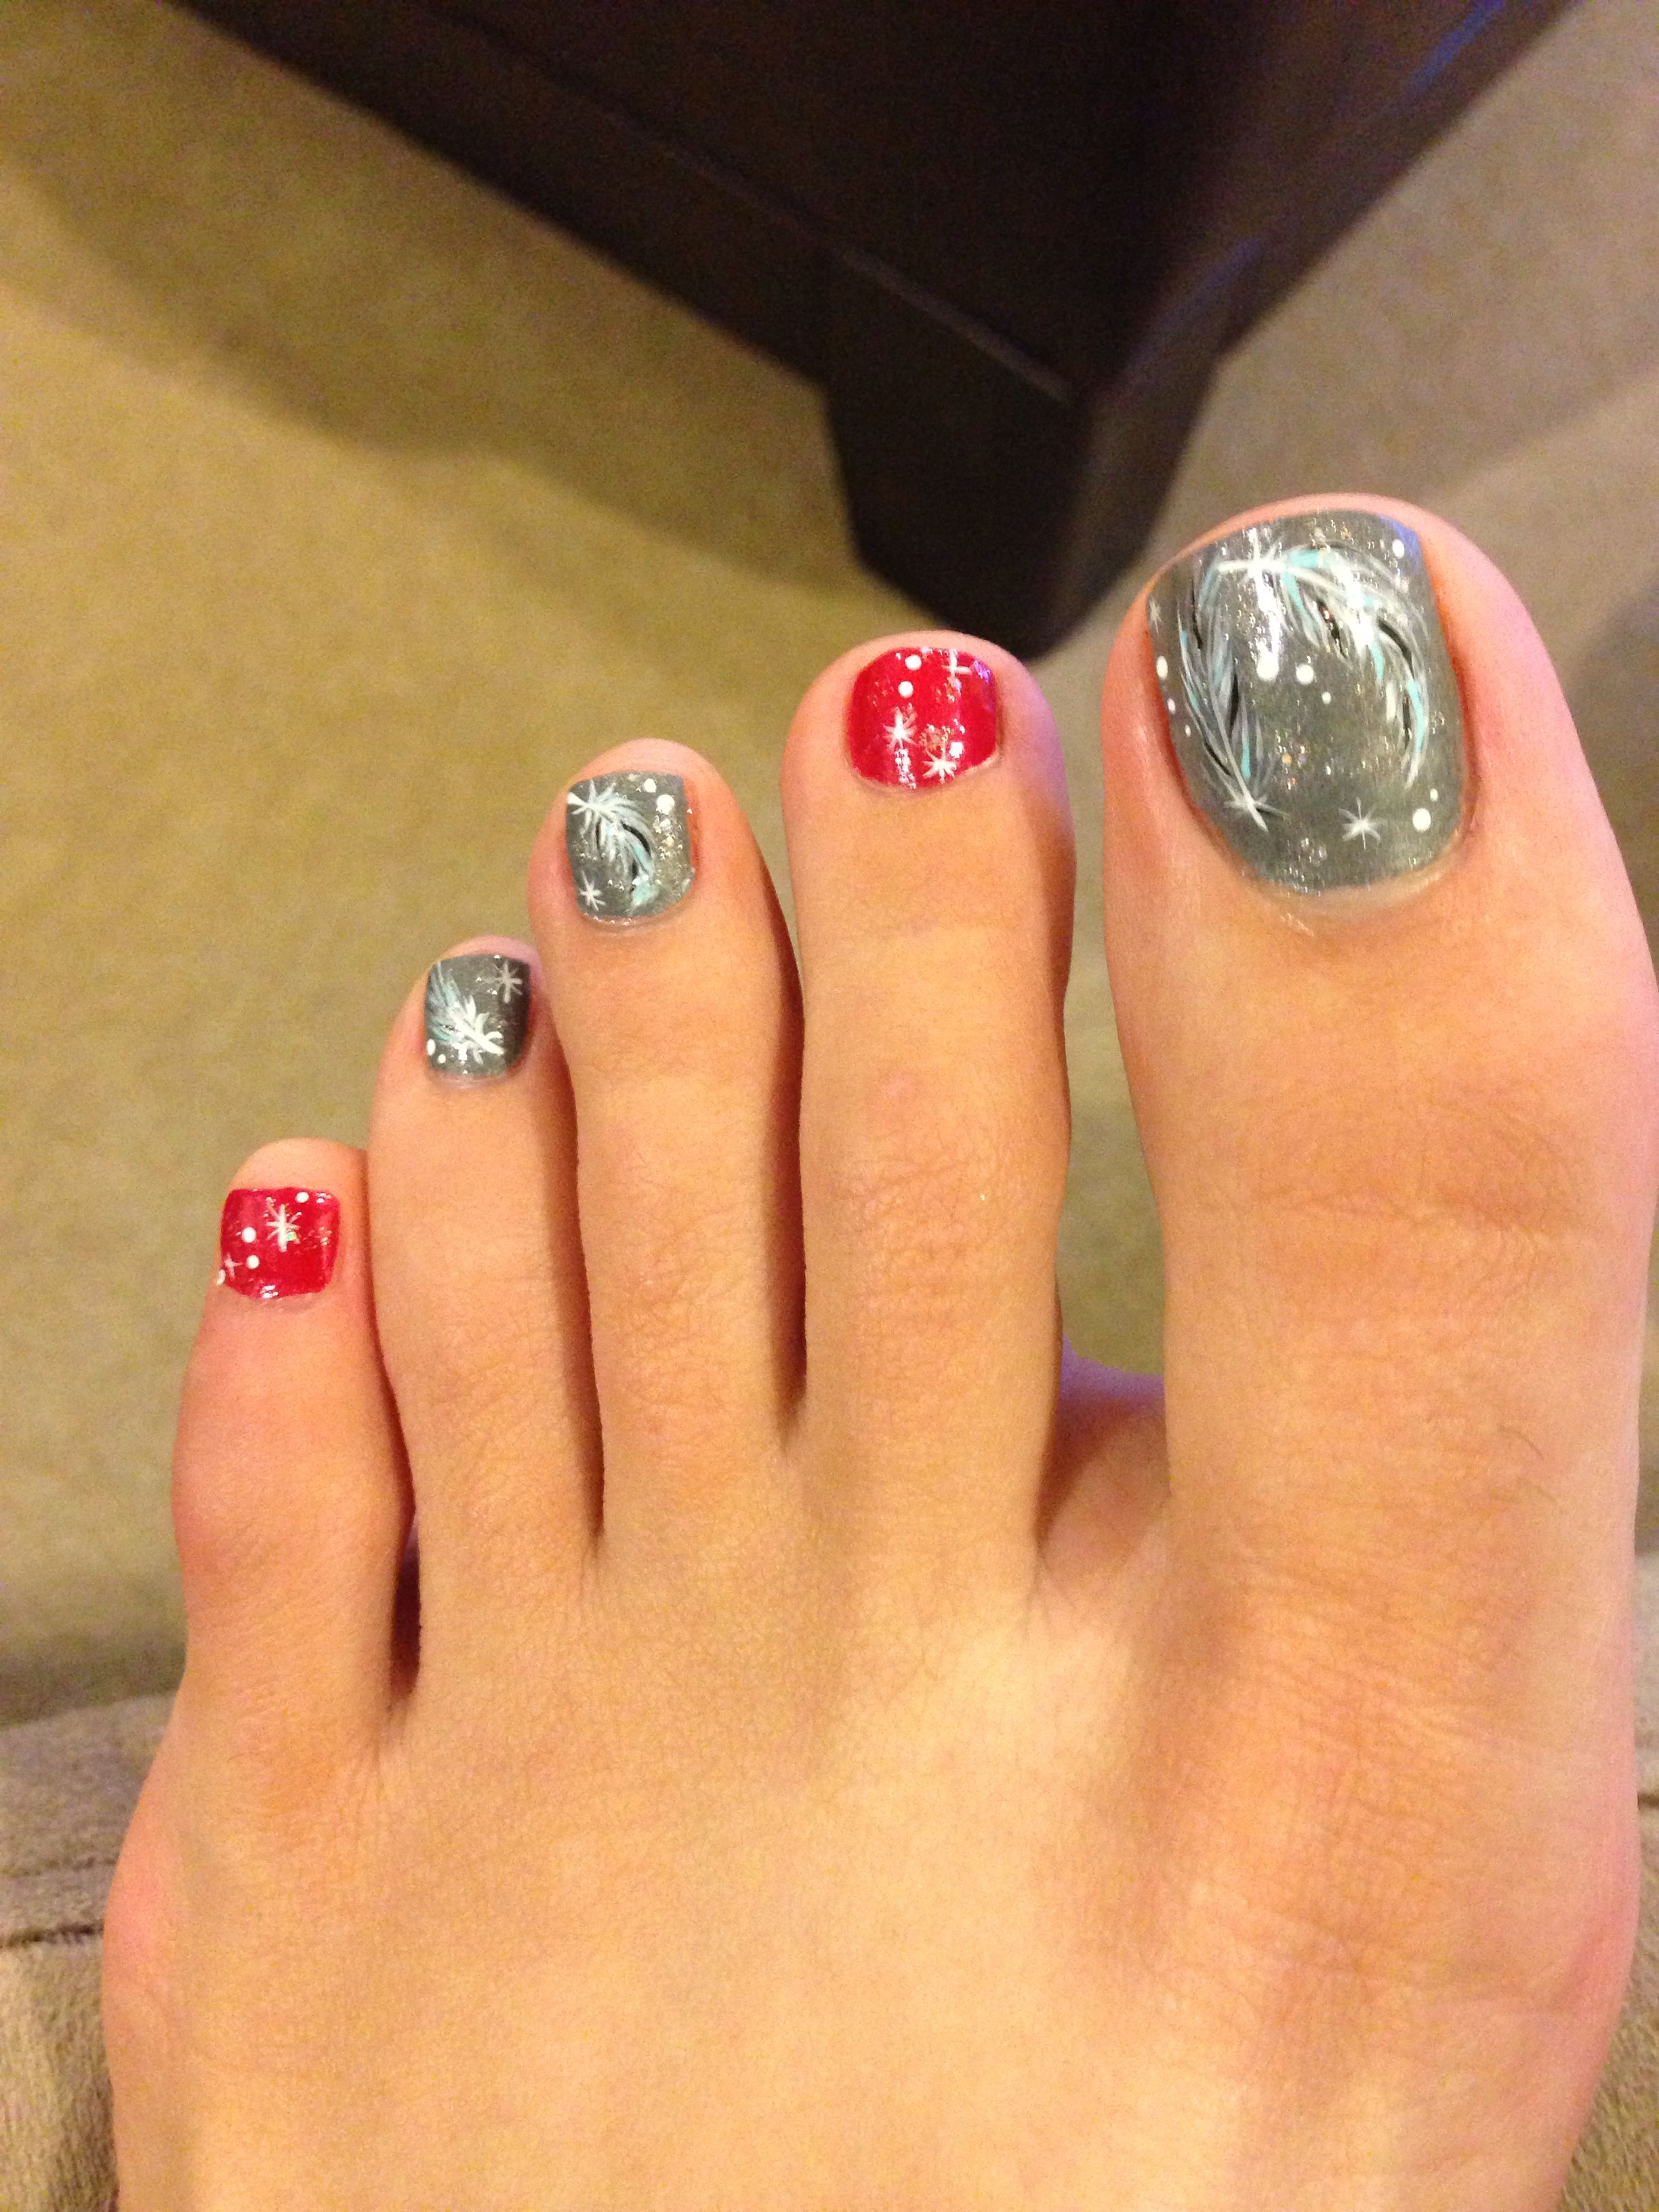 60 Pretty Christmas Toe Nail Designs For Holiday Blurmark Christmas Toes Toe Nail Designs Toe Nails